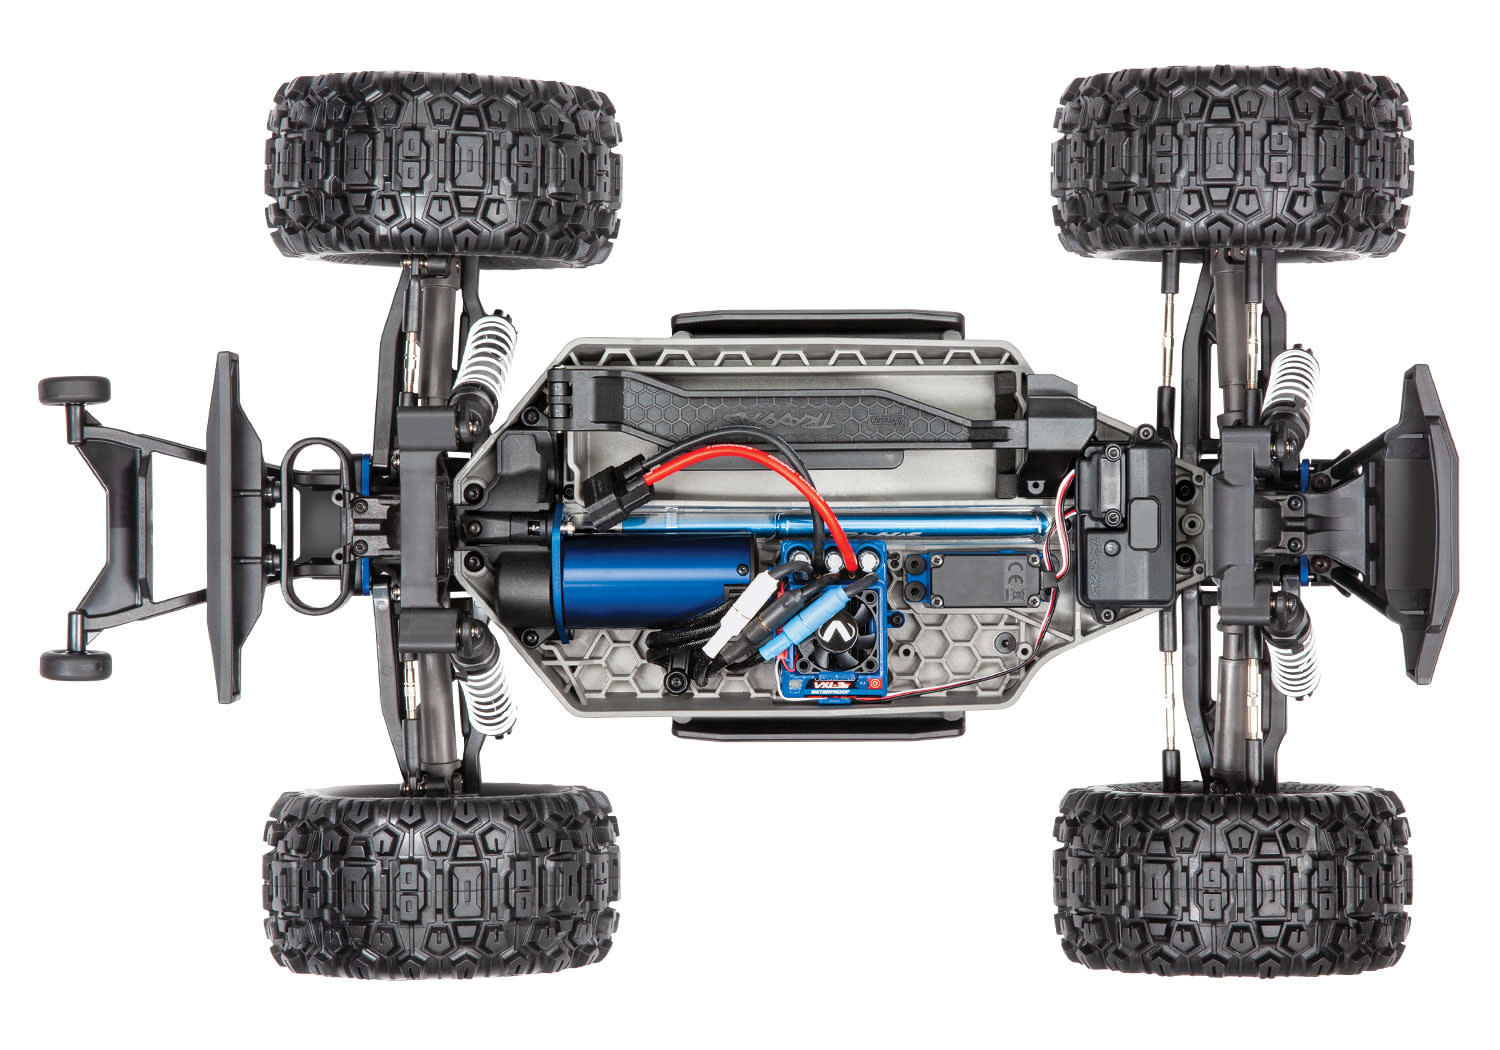 Traxxas Hoss 1/10 Scale 4WD Brushless Electric Monster Truck, VXL-3S, TQi - Green TRX90076-4G-4